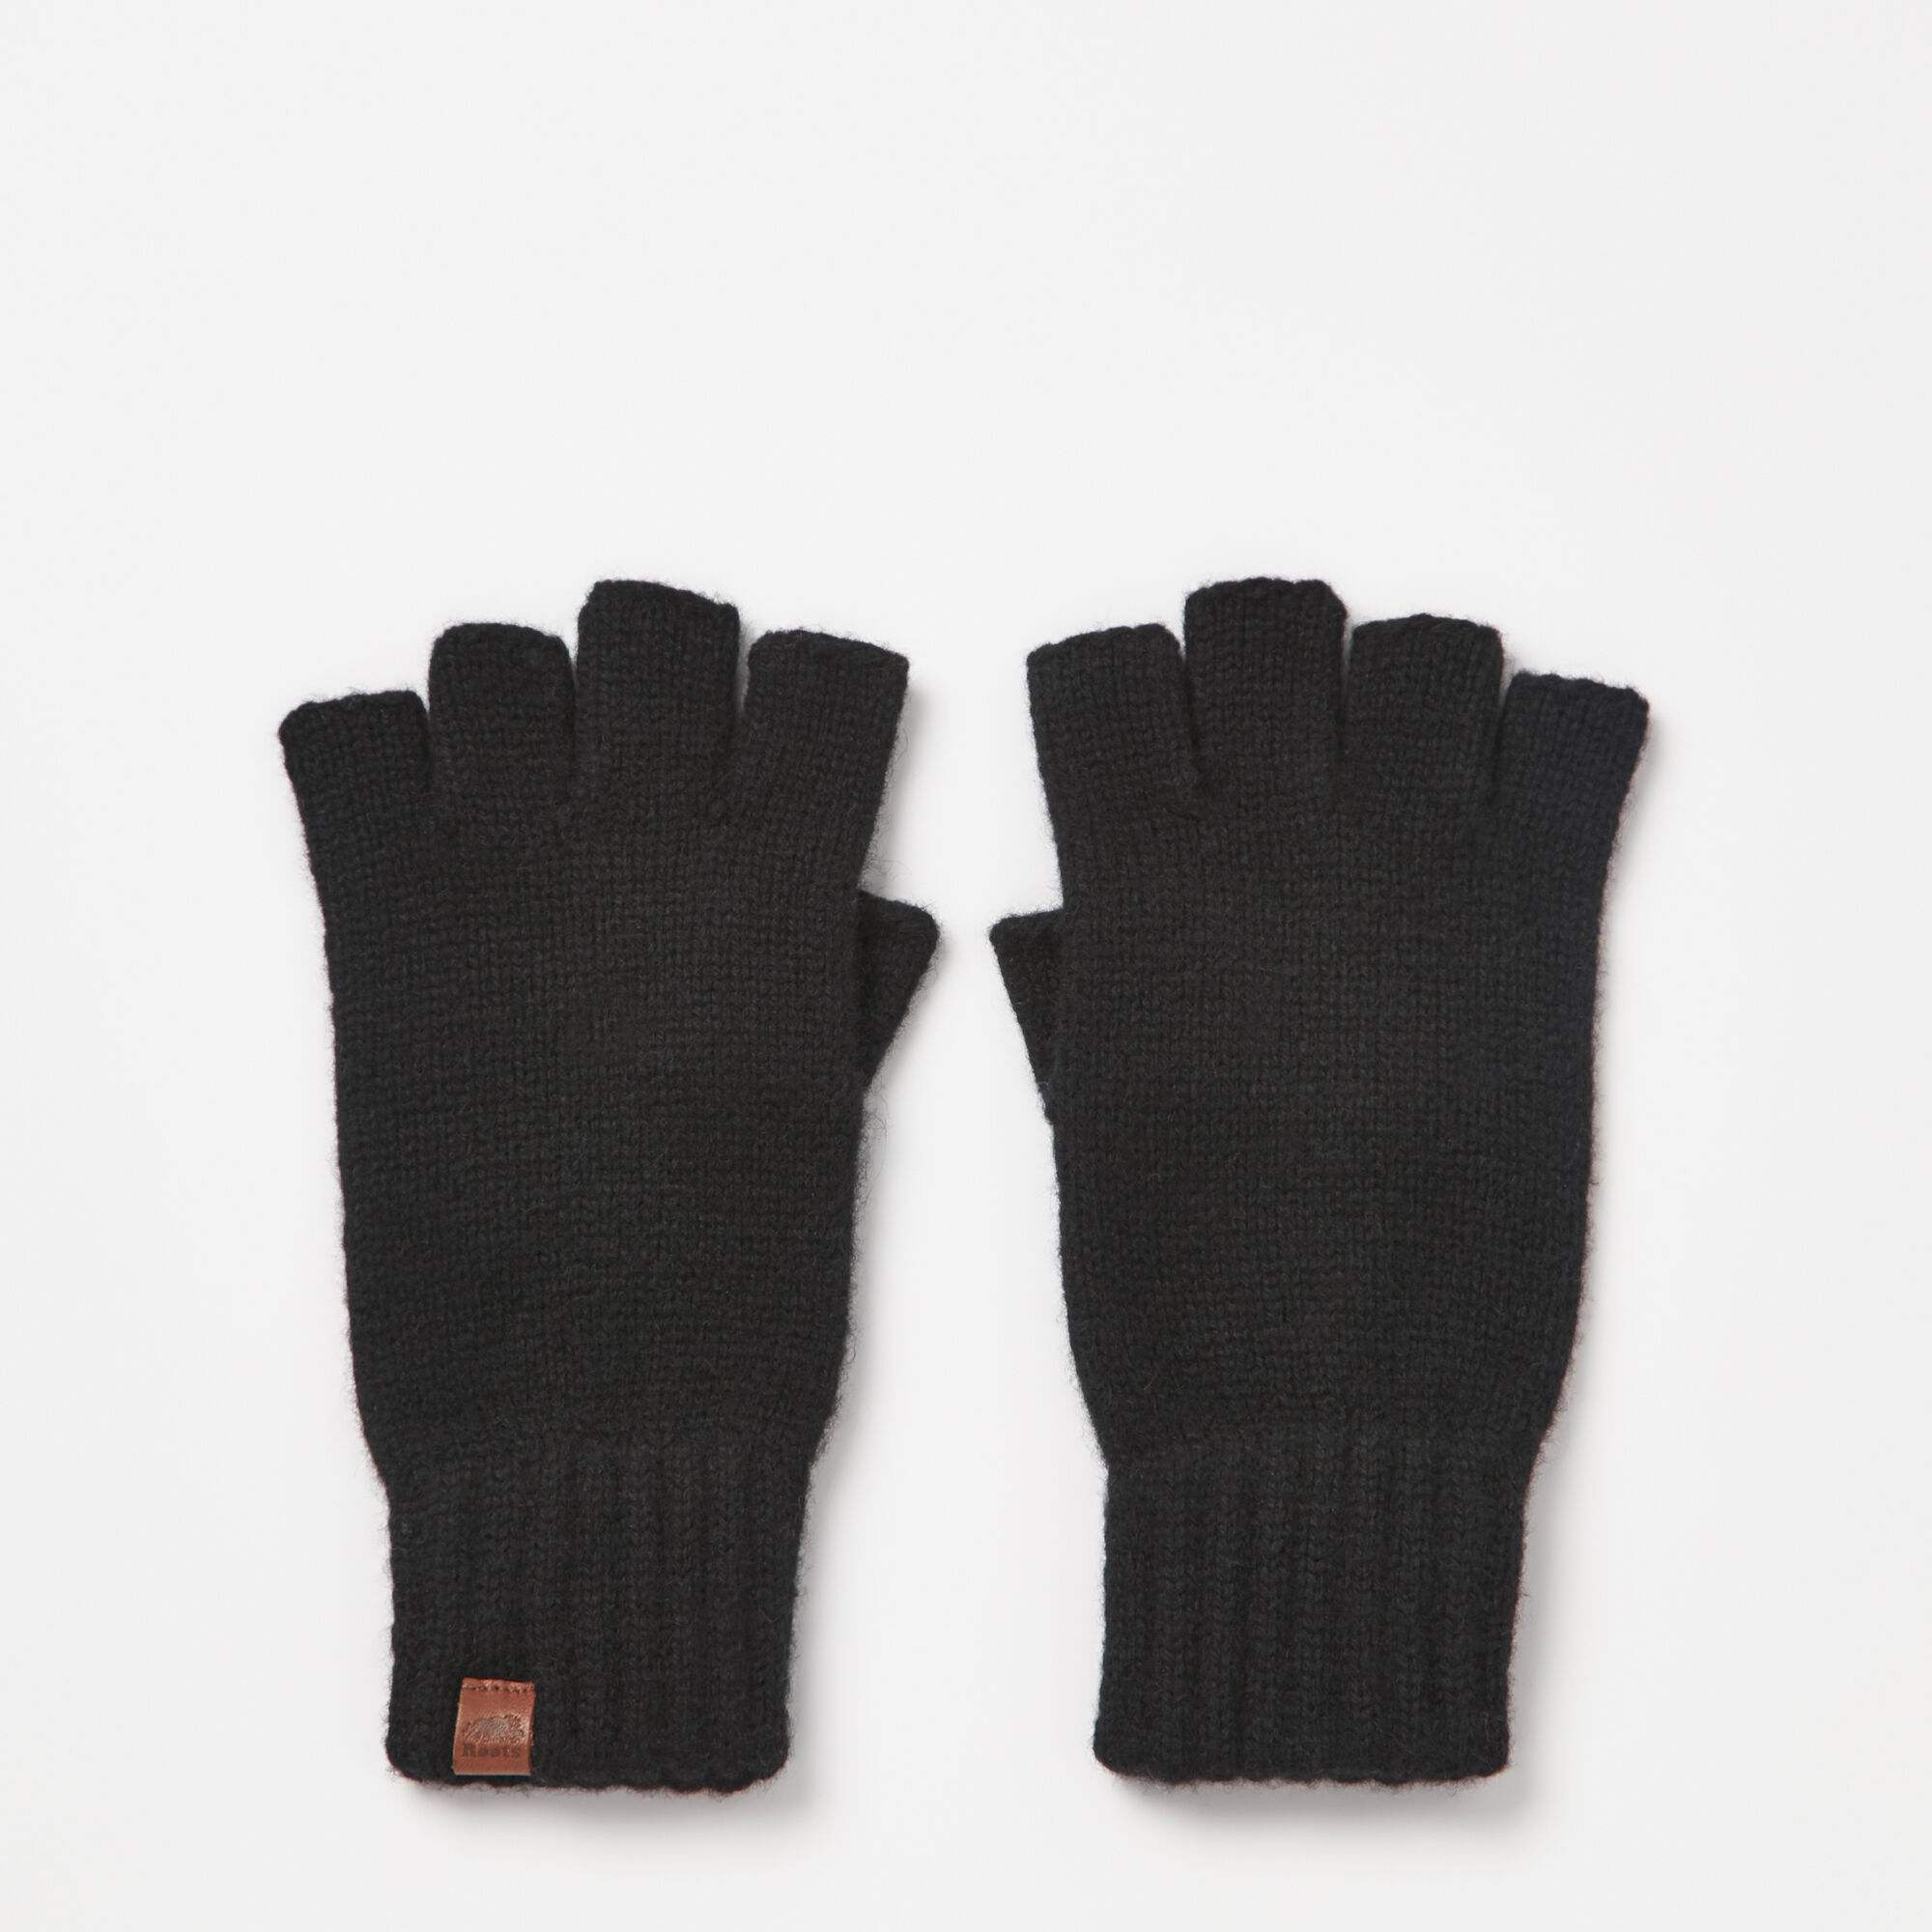 Fingerless gloves canada - Ella Fingerless Glove